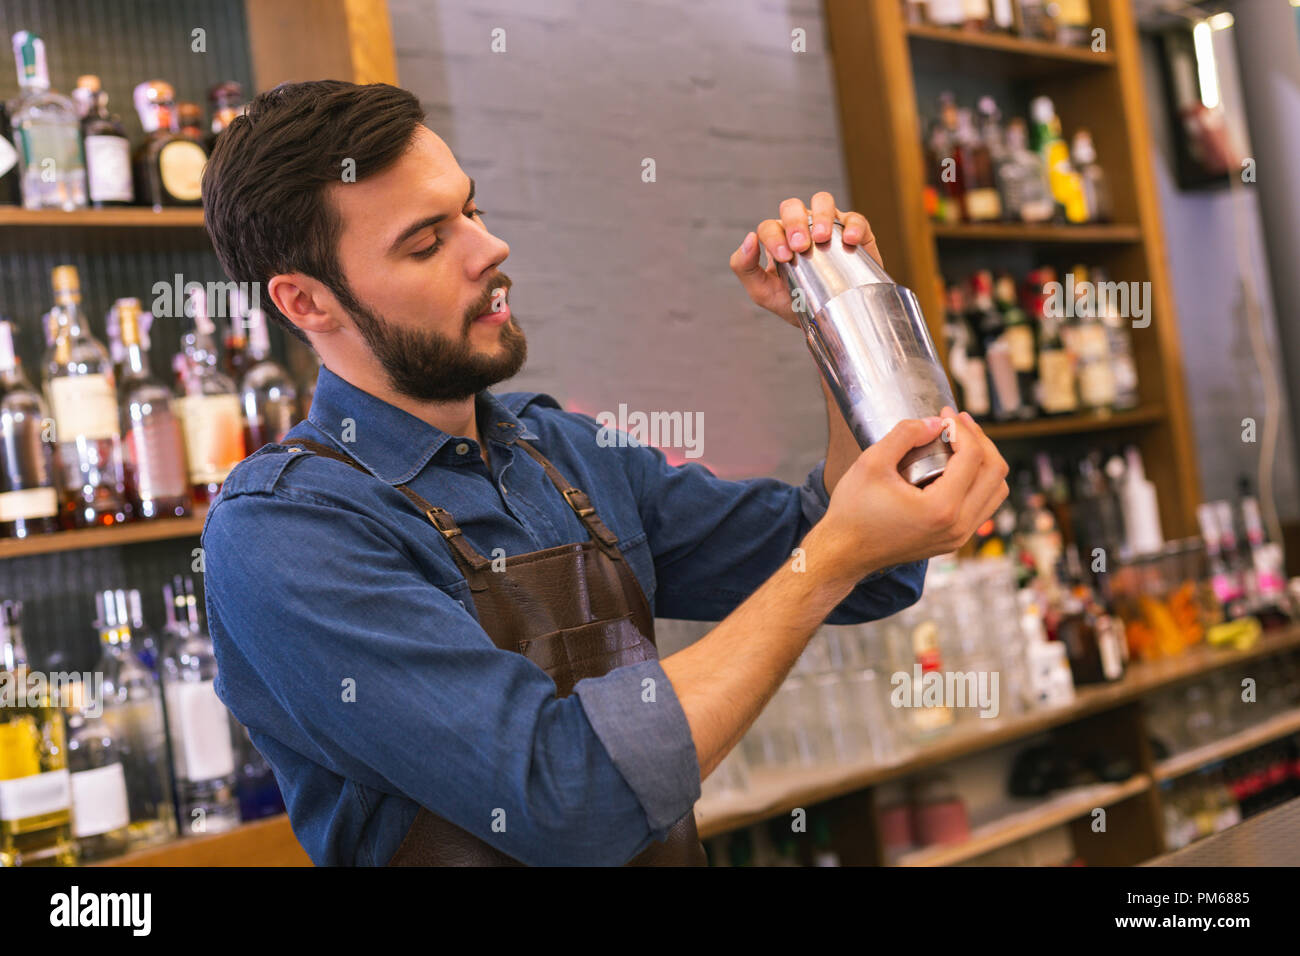 Careful barman looking concentrated while making cocktails - Stock Image